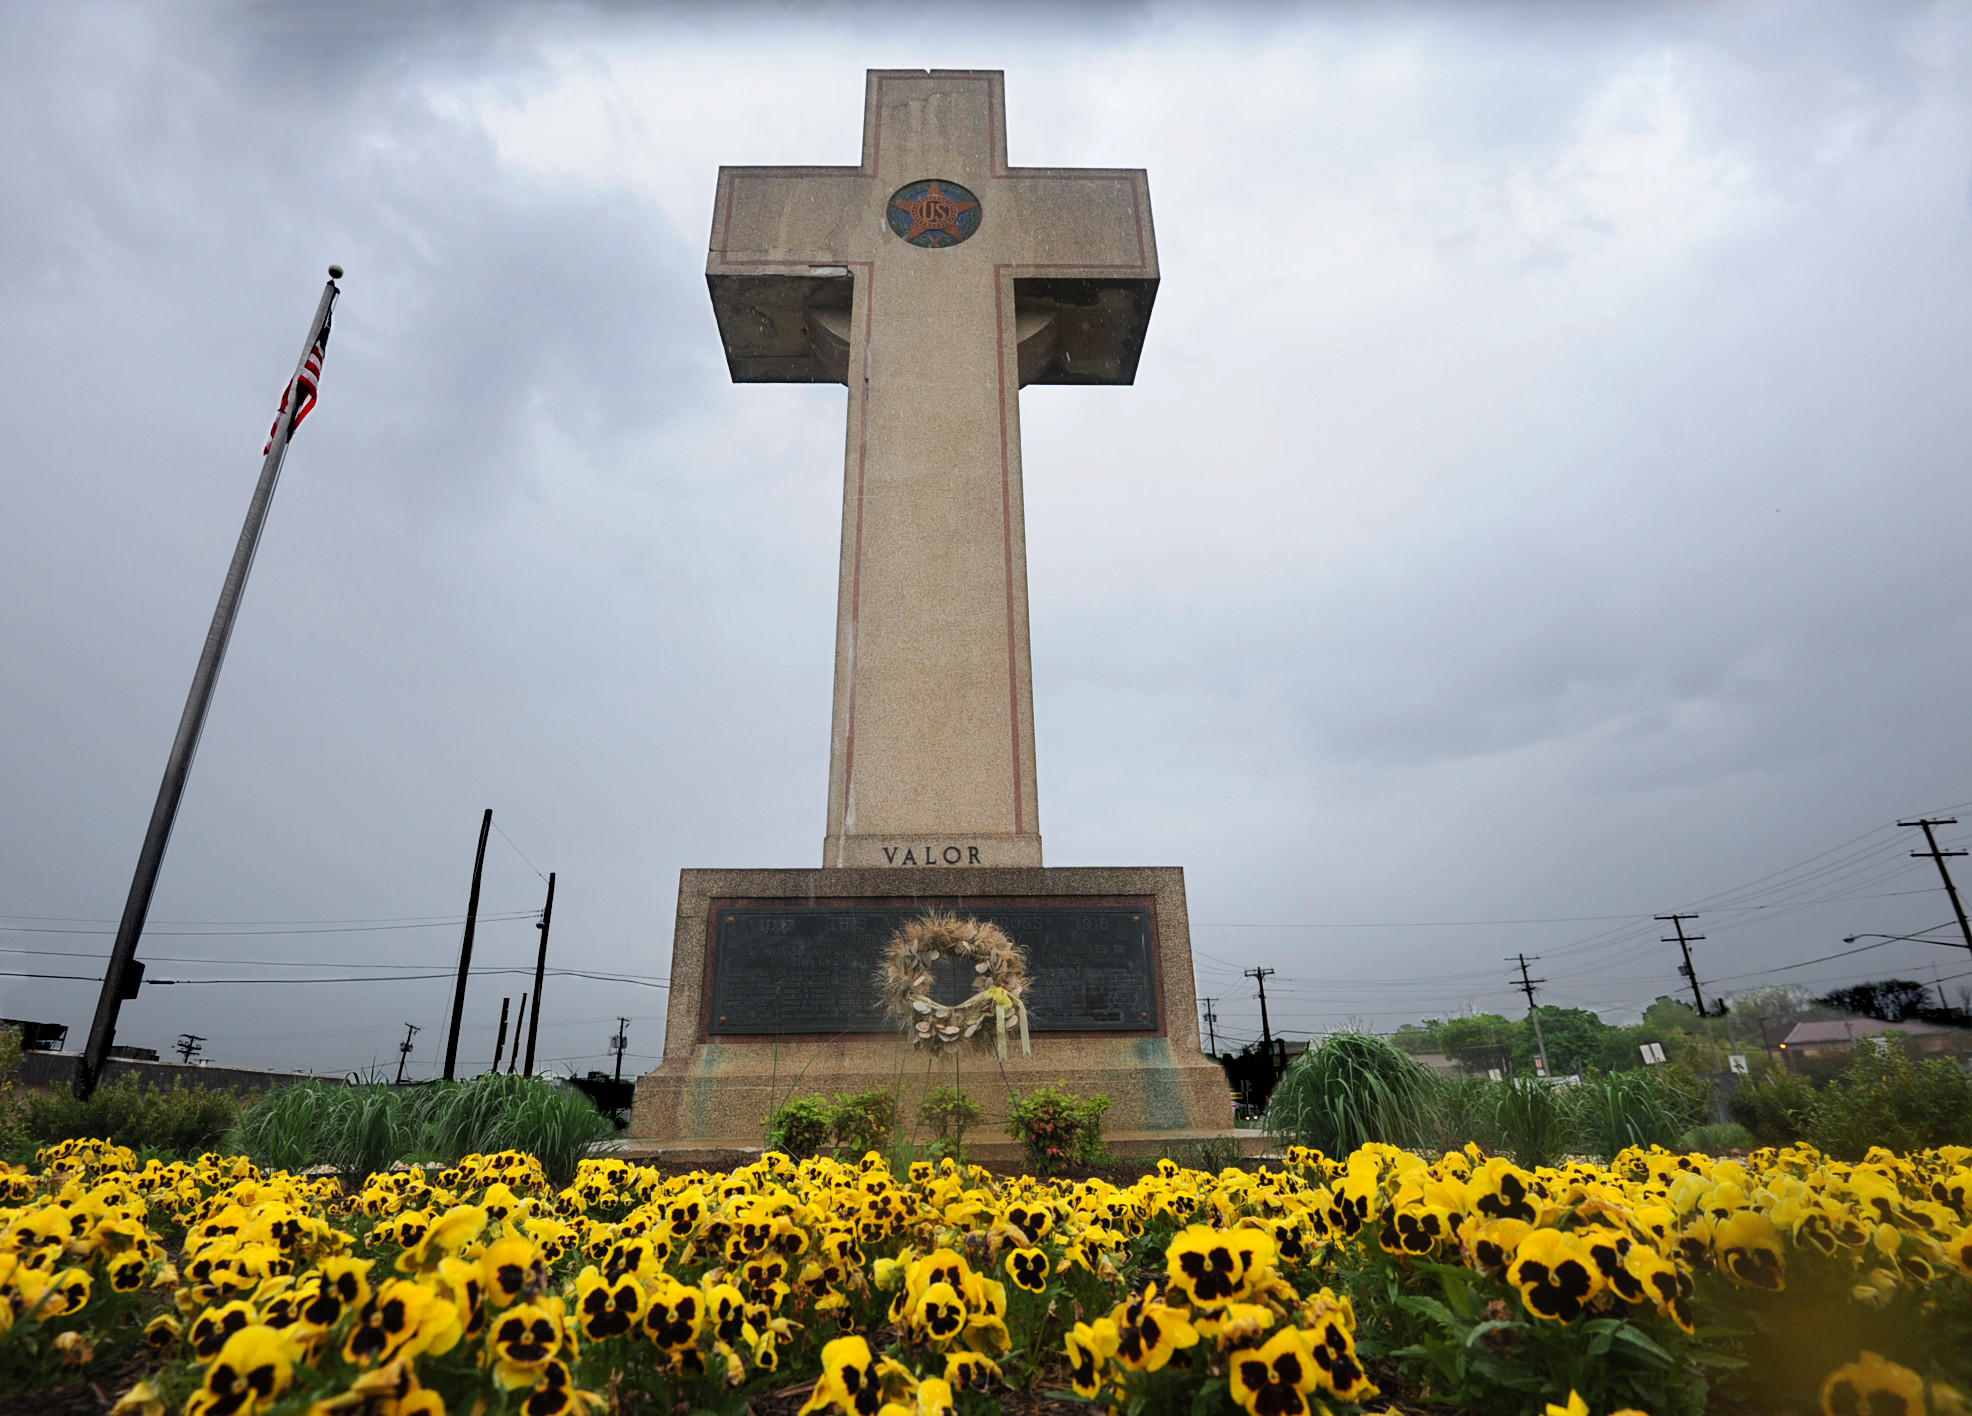 The Bladensburg Peace Cross, as the local landmark is known, was dedicated in 1925 as a memorial to Prince George's County's World War I dead. Now the American Humanist Association is suing the Maryland-National Capital Park and Planning Commission for its removal as a violation of the constitutional separation of church and state.